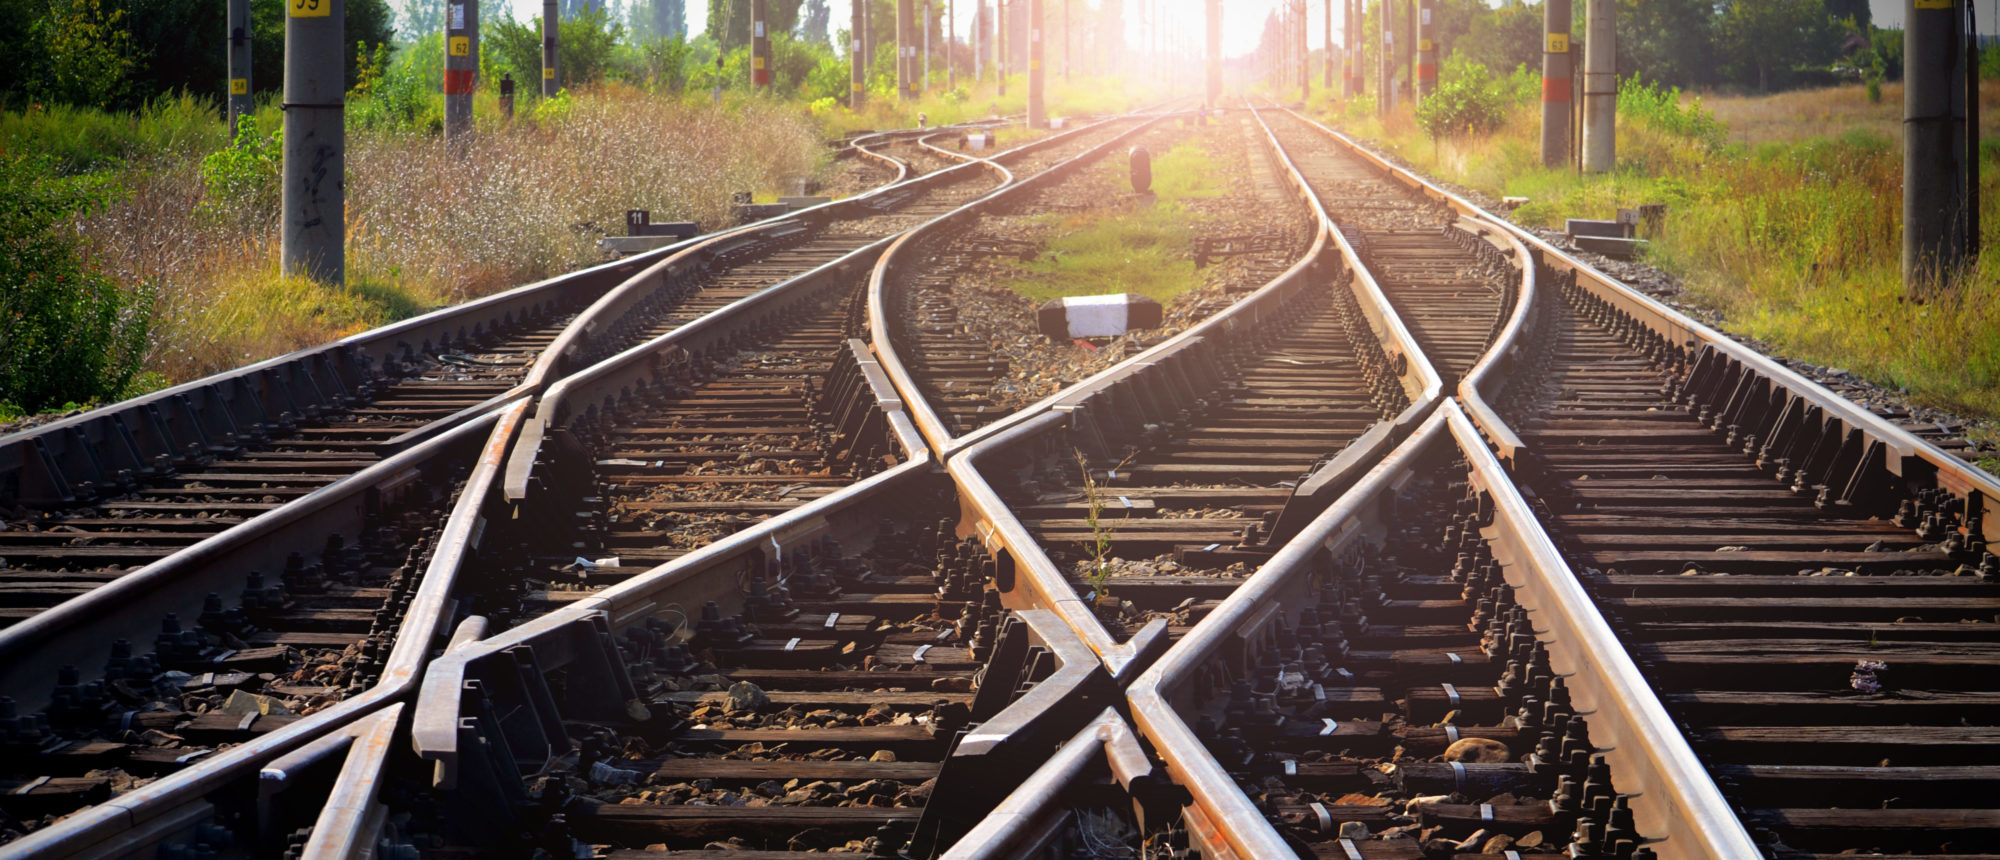 Train tracks leading into the sunset. (Shutterstock)